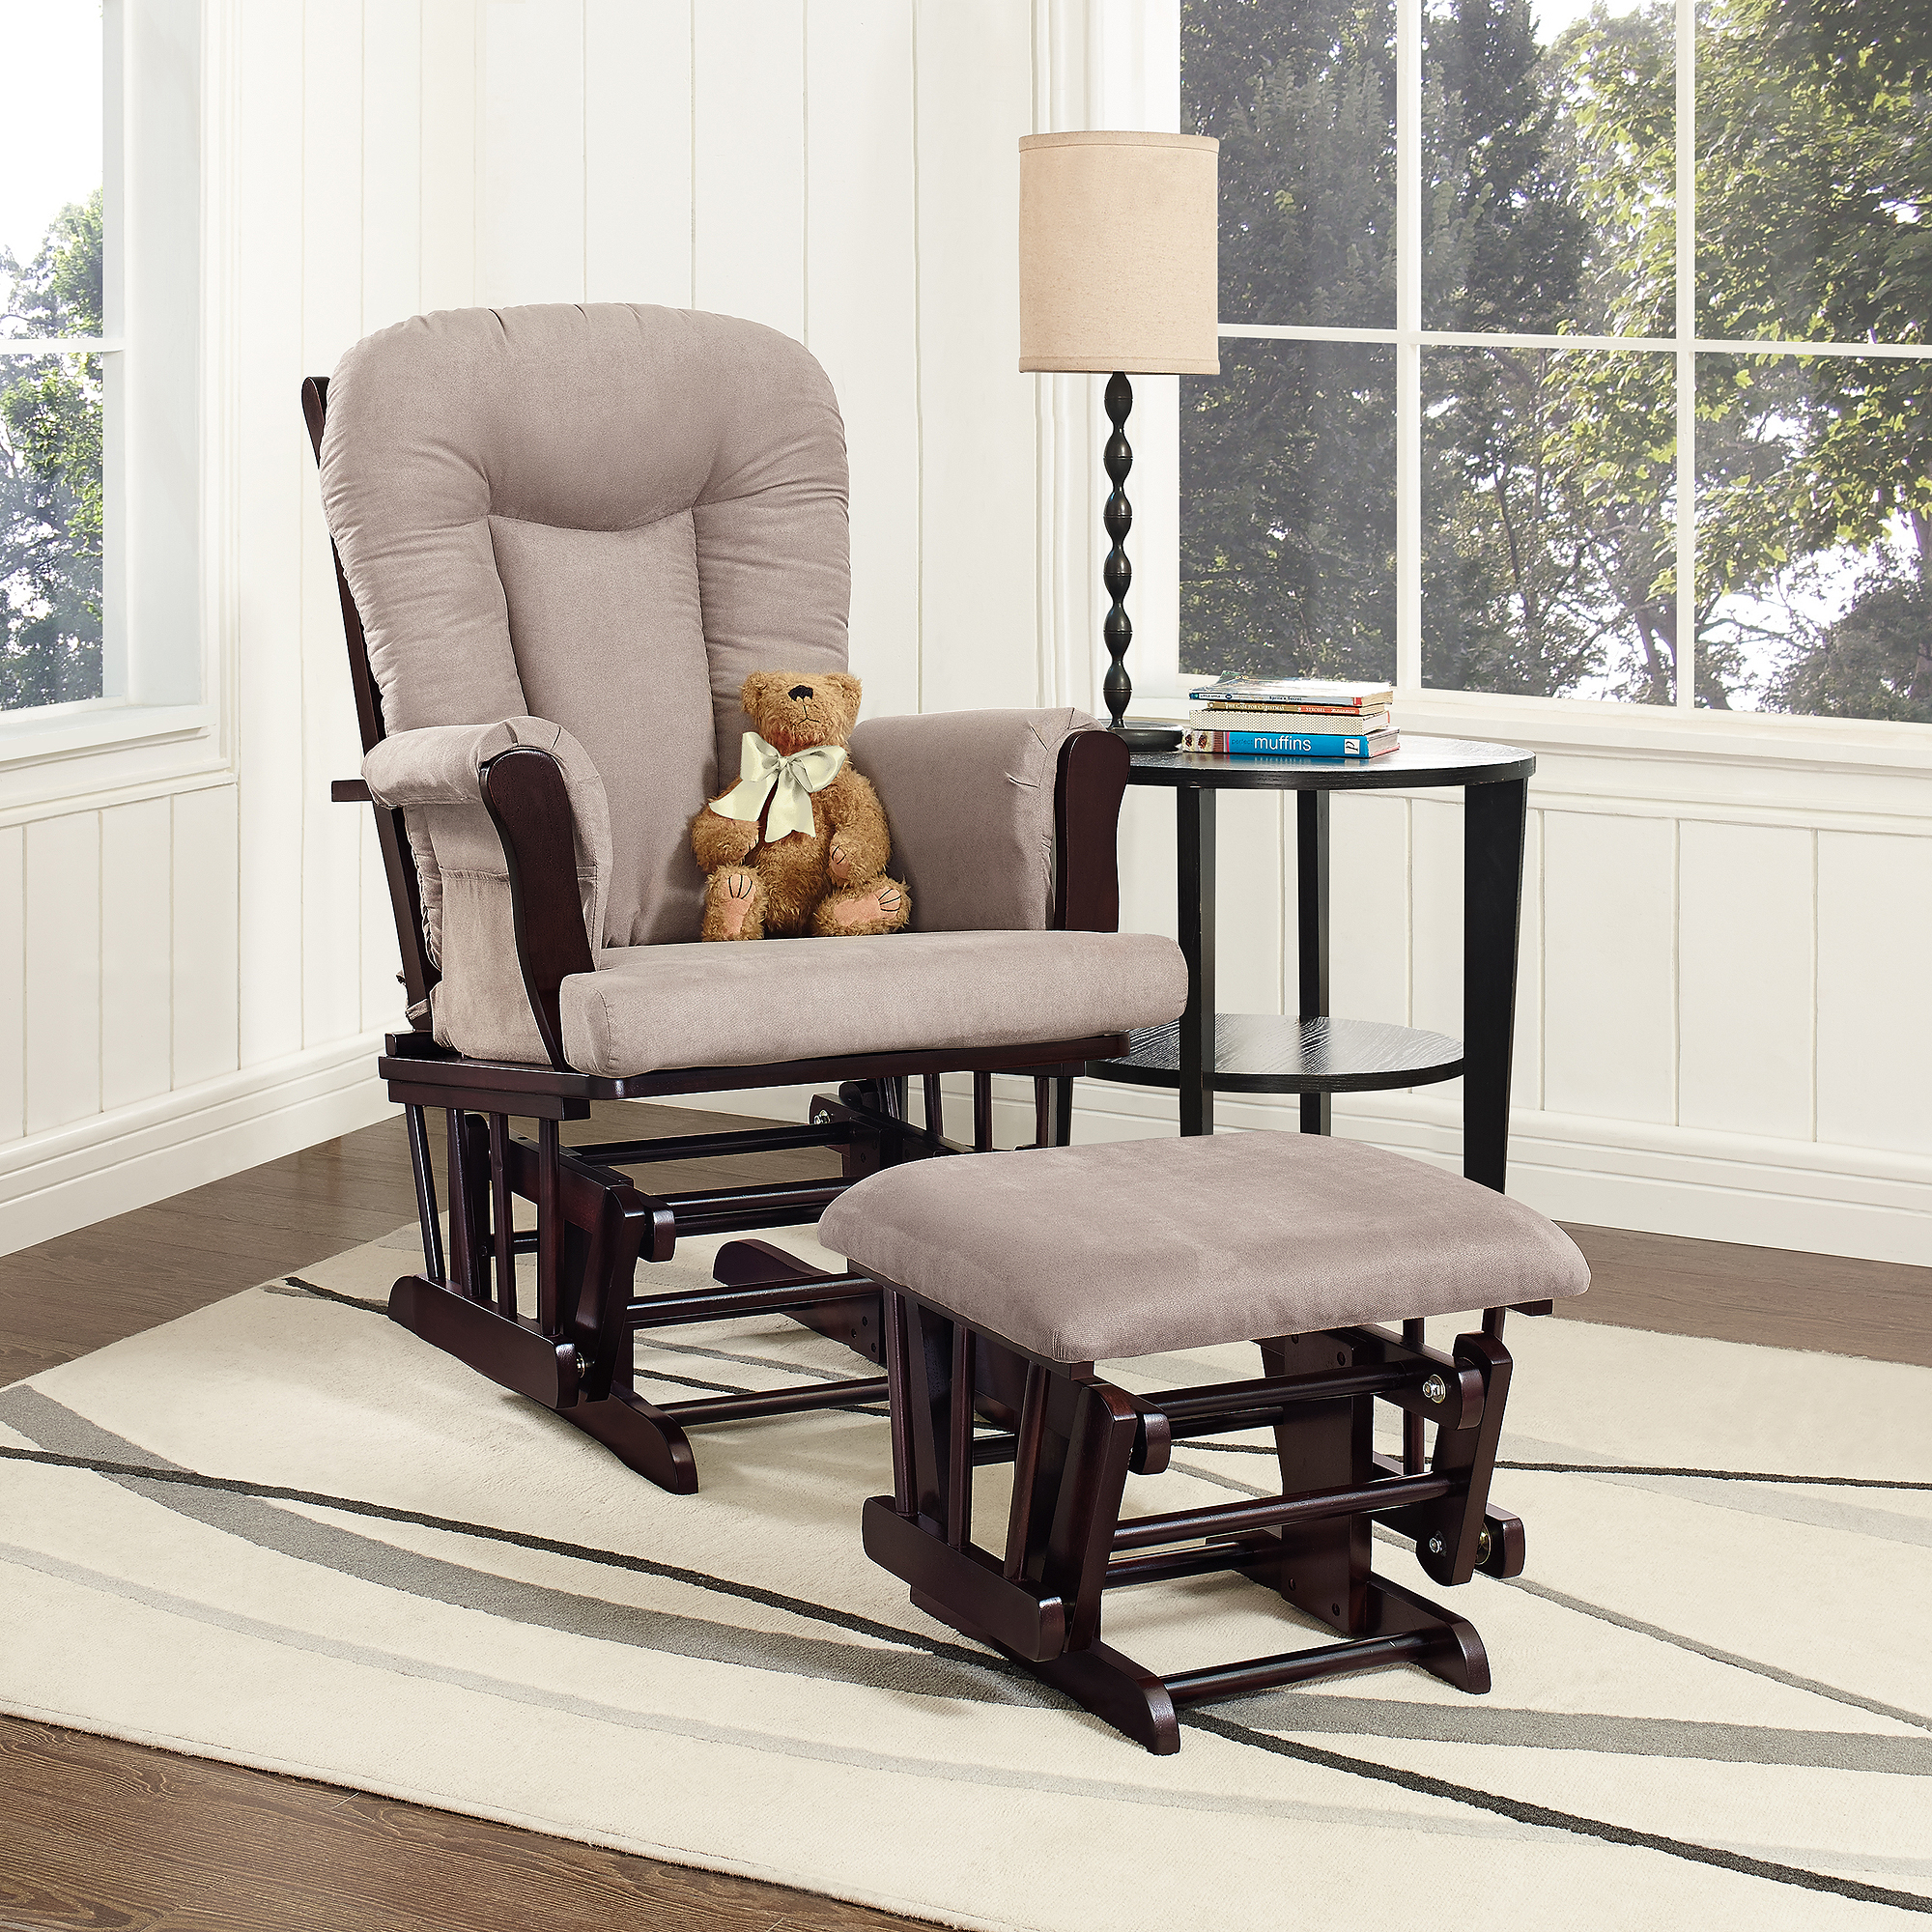 Baby Relax Raegan Glider Rocker and Ottoman Set, Gray